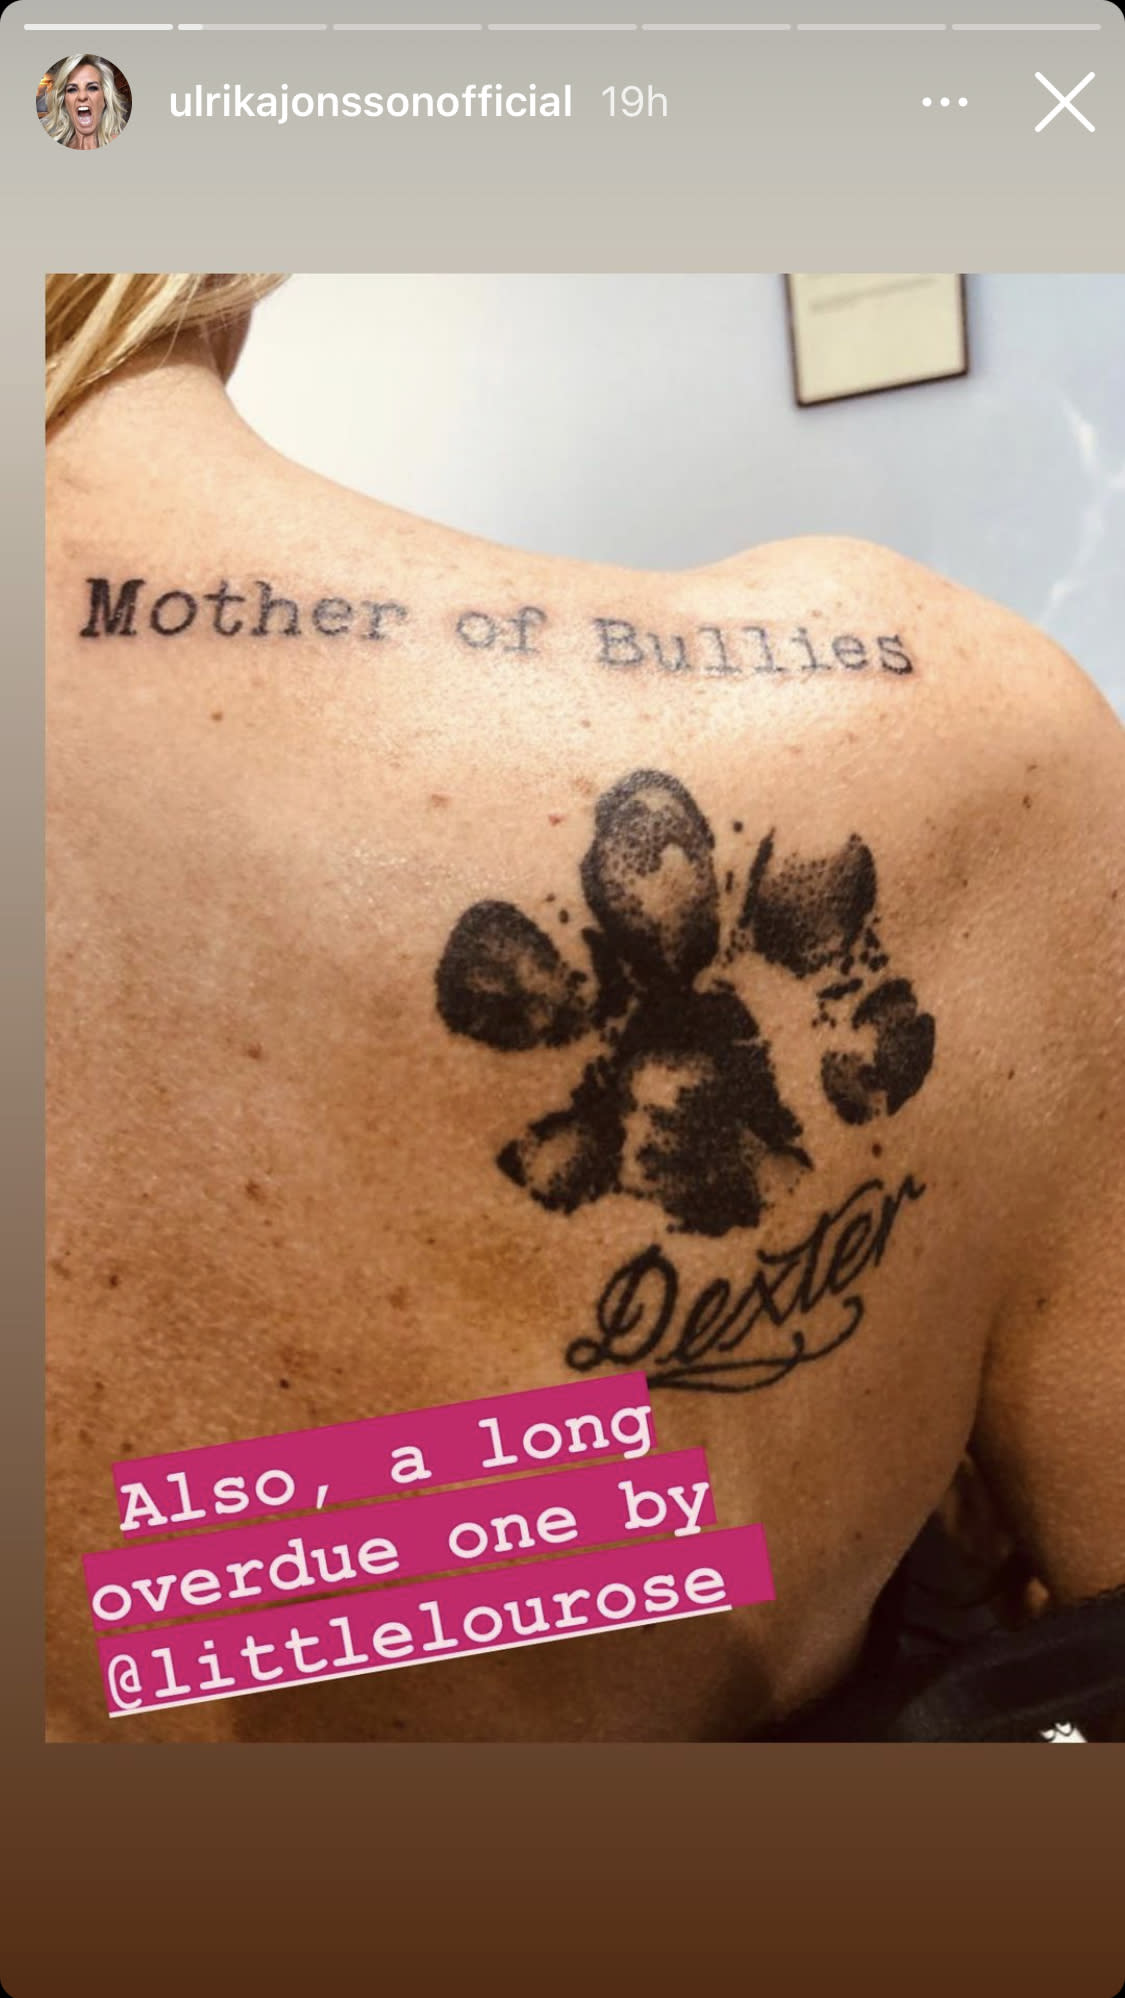 Ulrika Jonsson reveals two huge dog tribute tattoos and a new piercing on her Instagram story.